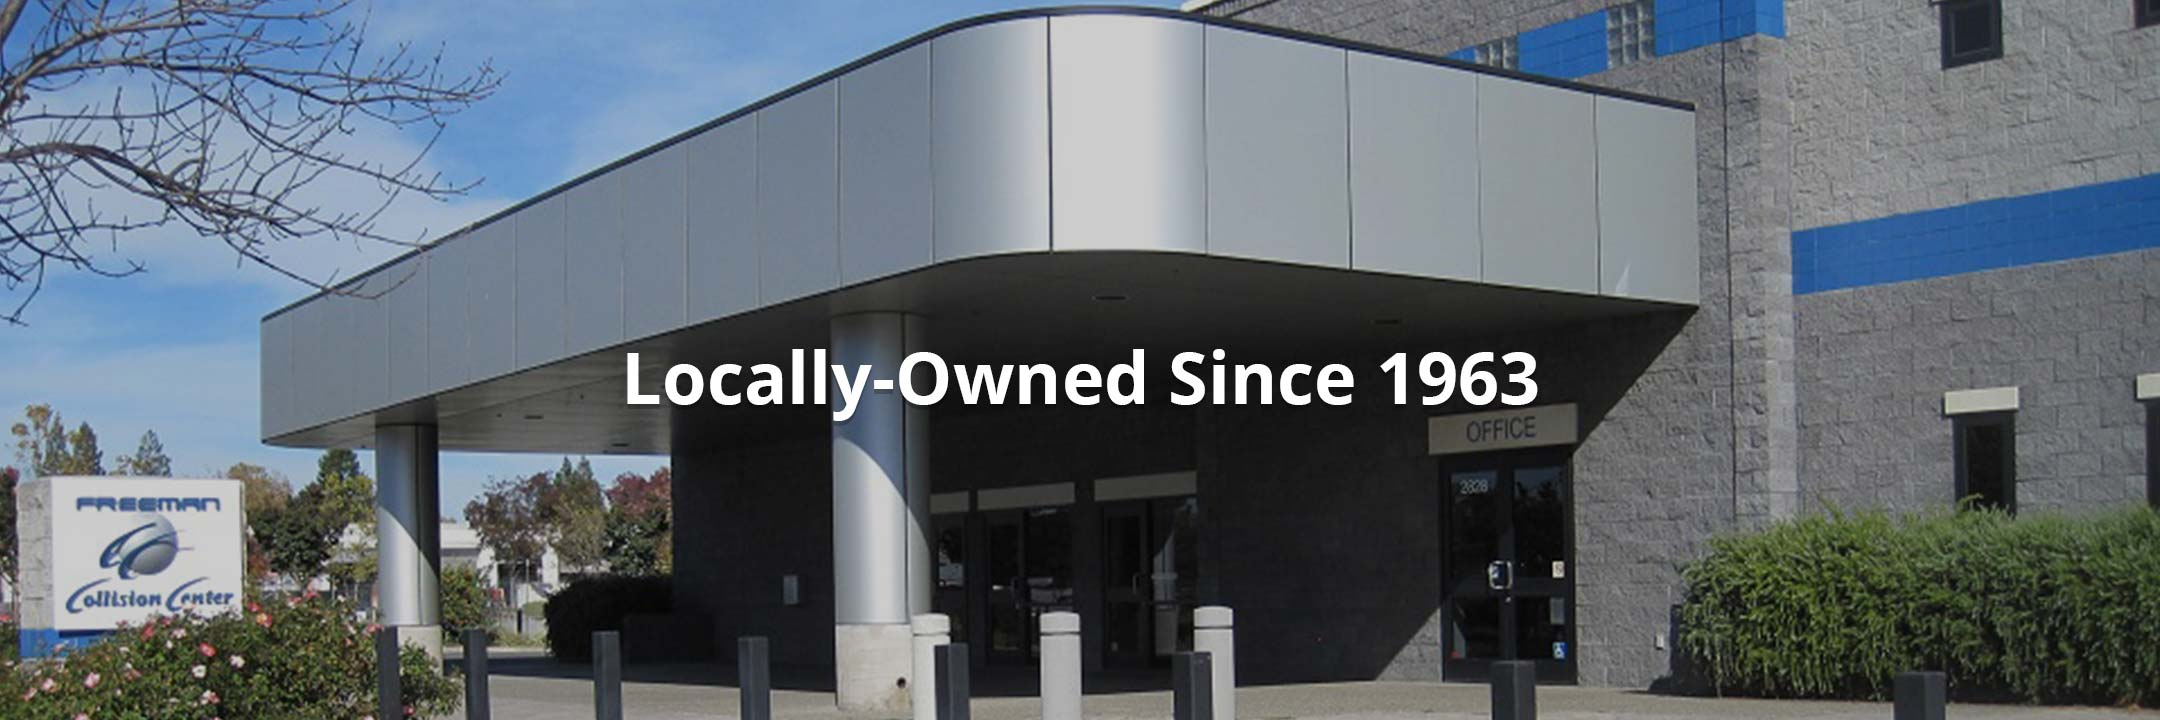 Locally-Owned Since 1963